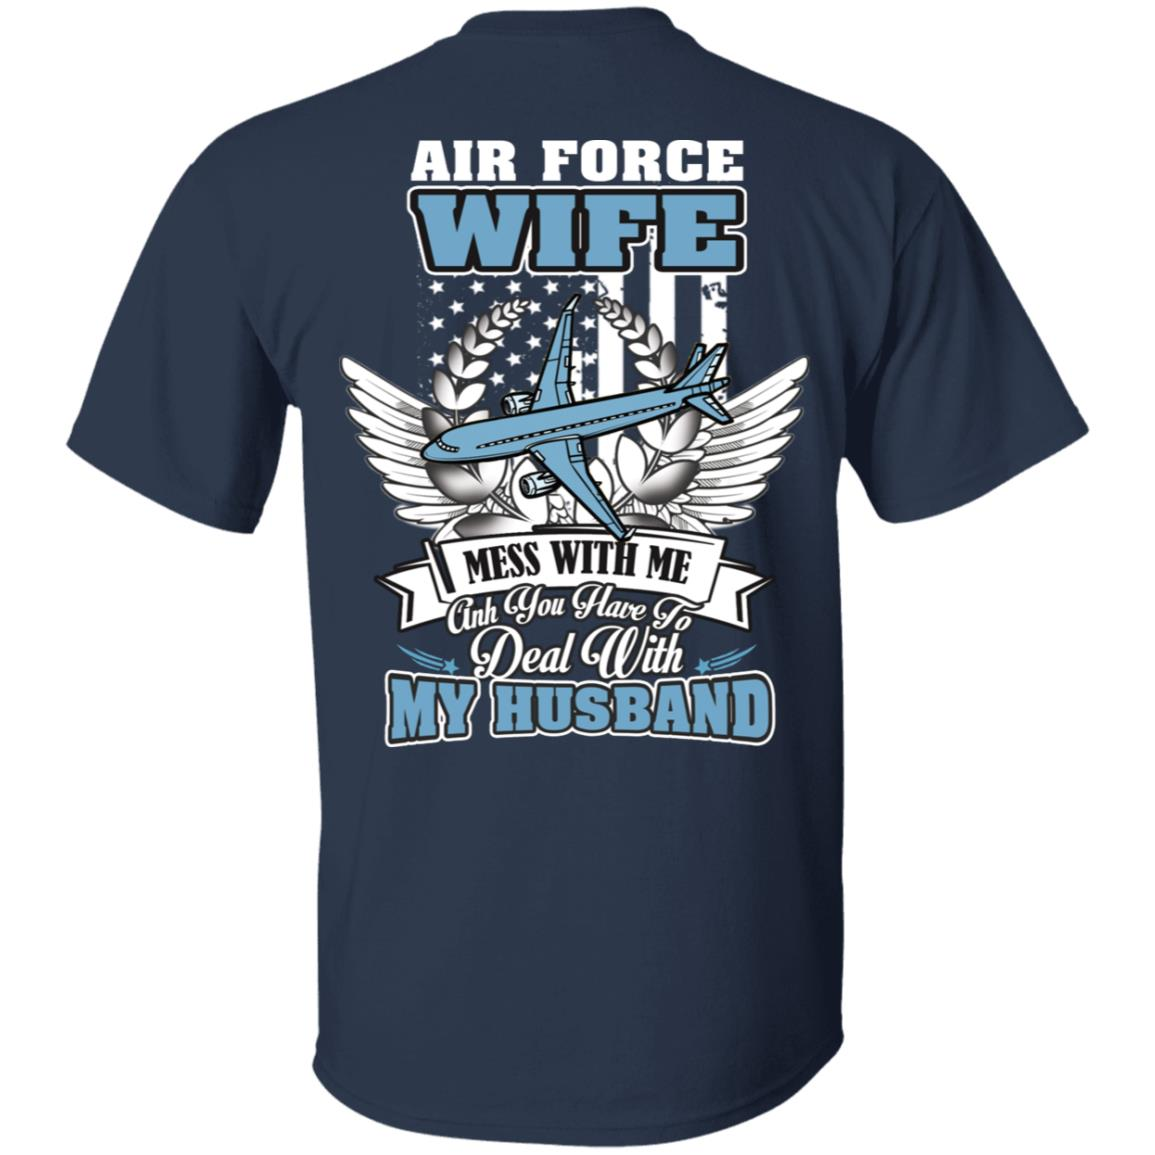 Air Force Wife Shirt Ultra Cotton Shirt